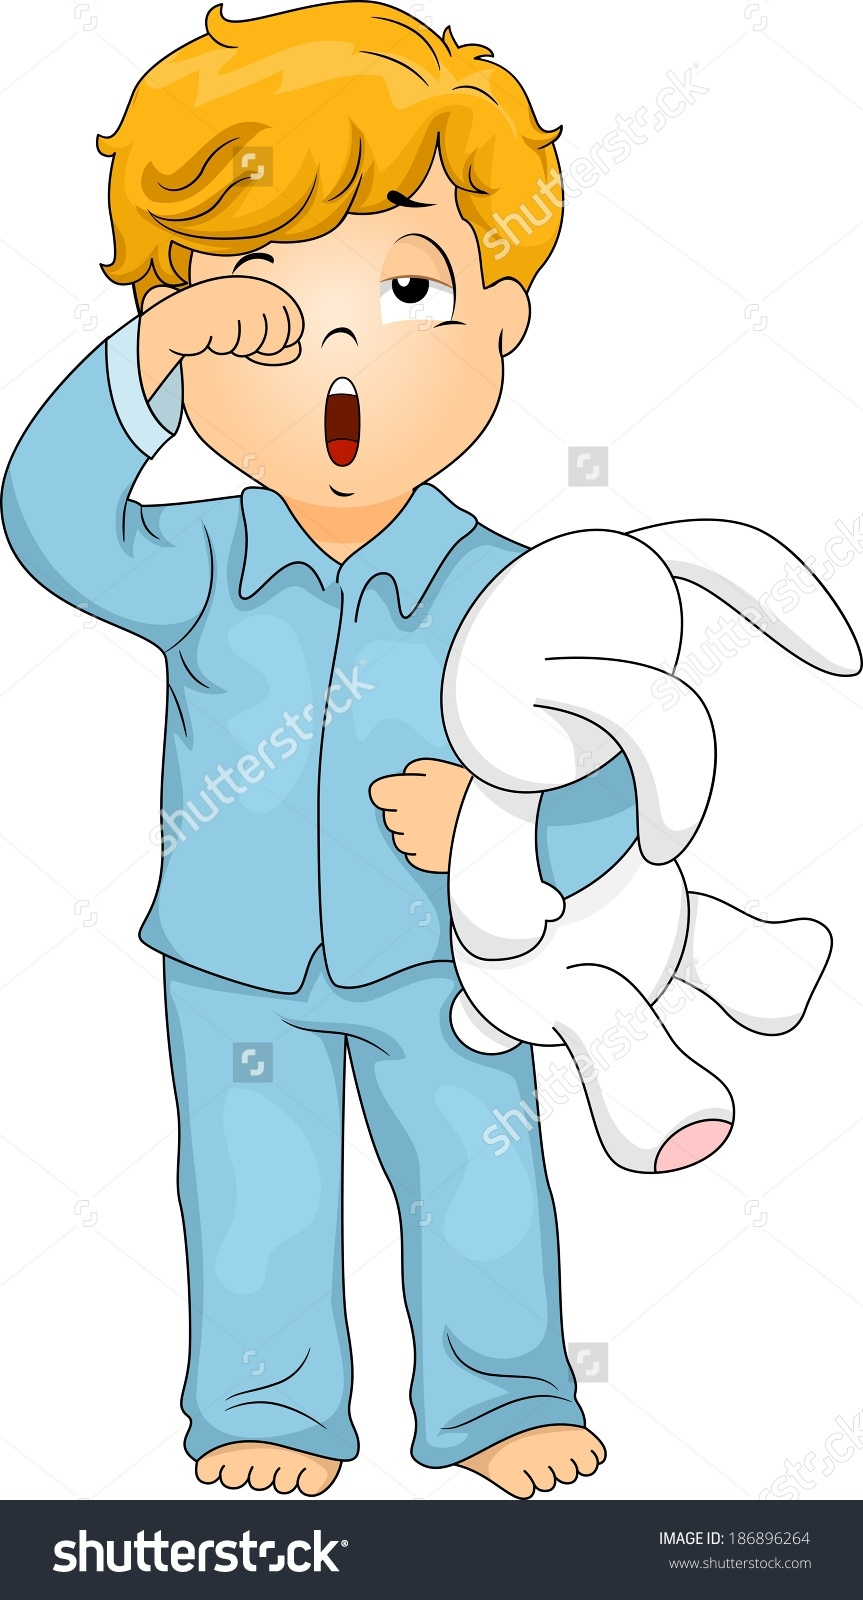 Boy putting on letters. Pajamas clipart